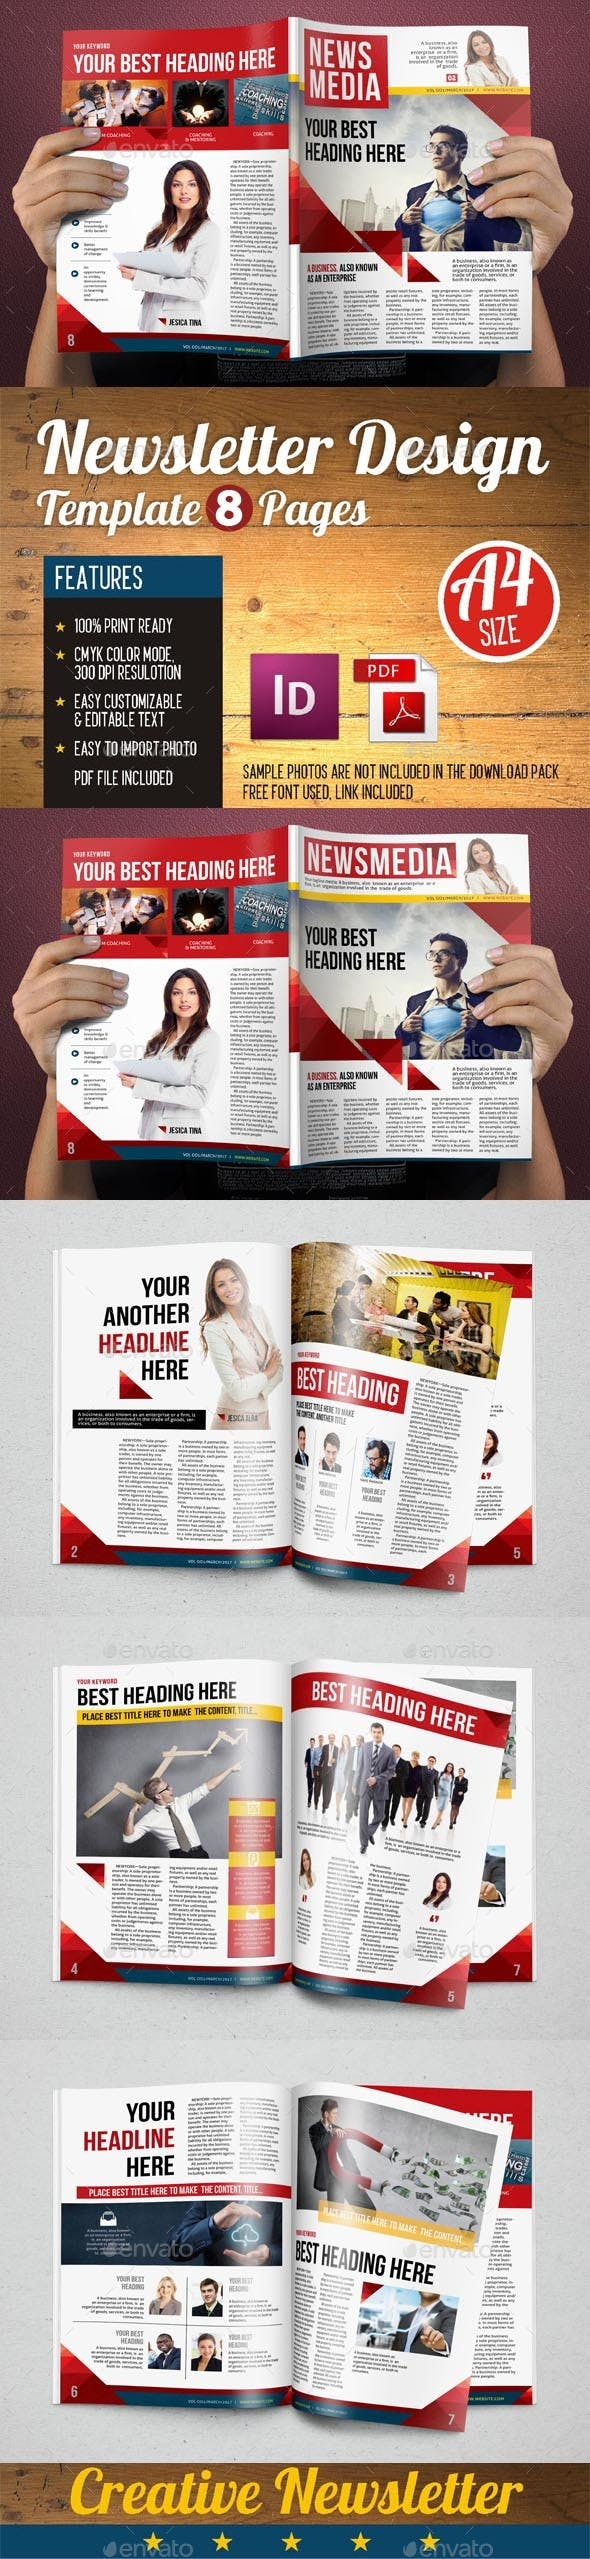 Newsletter Design Template Vol 5 By Hiro27 Graphicriver